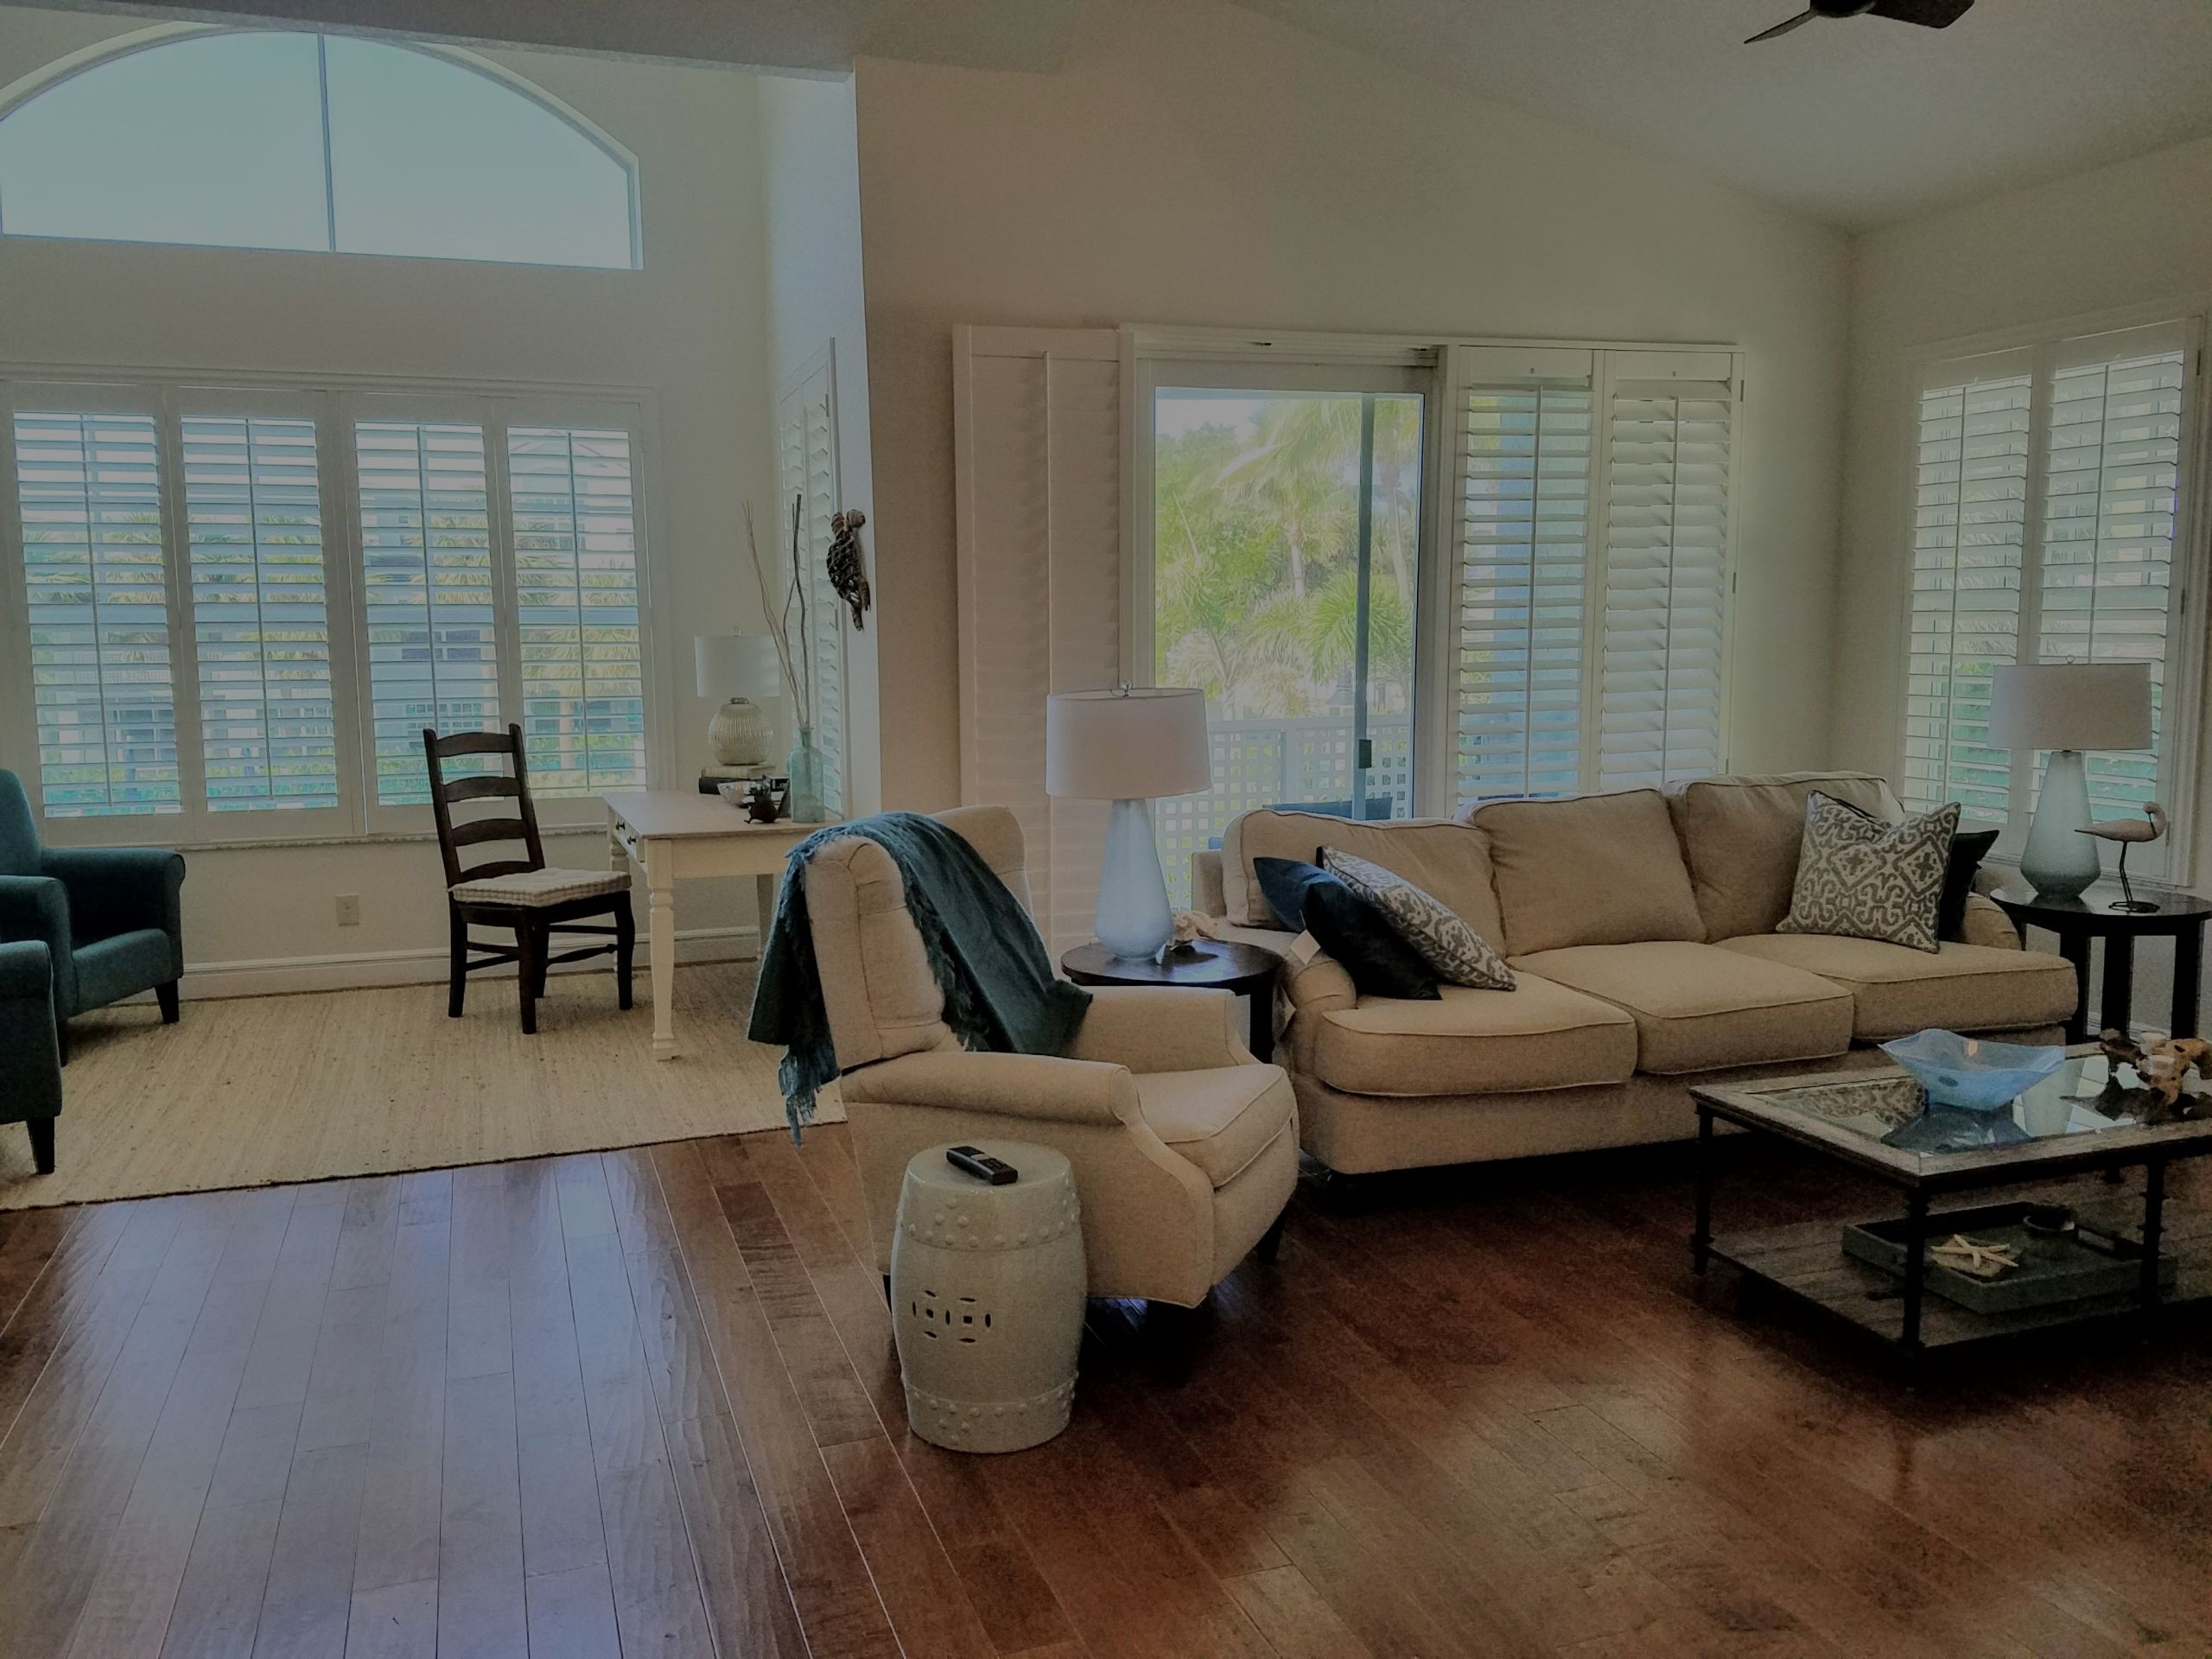 FOR SALE 1208 Mainsail Circle in Sea Colony